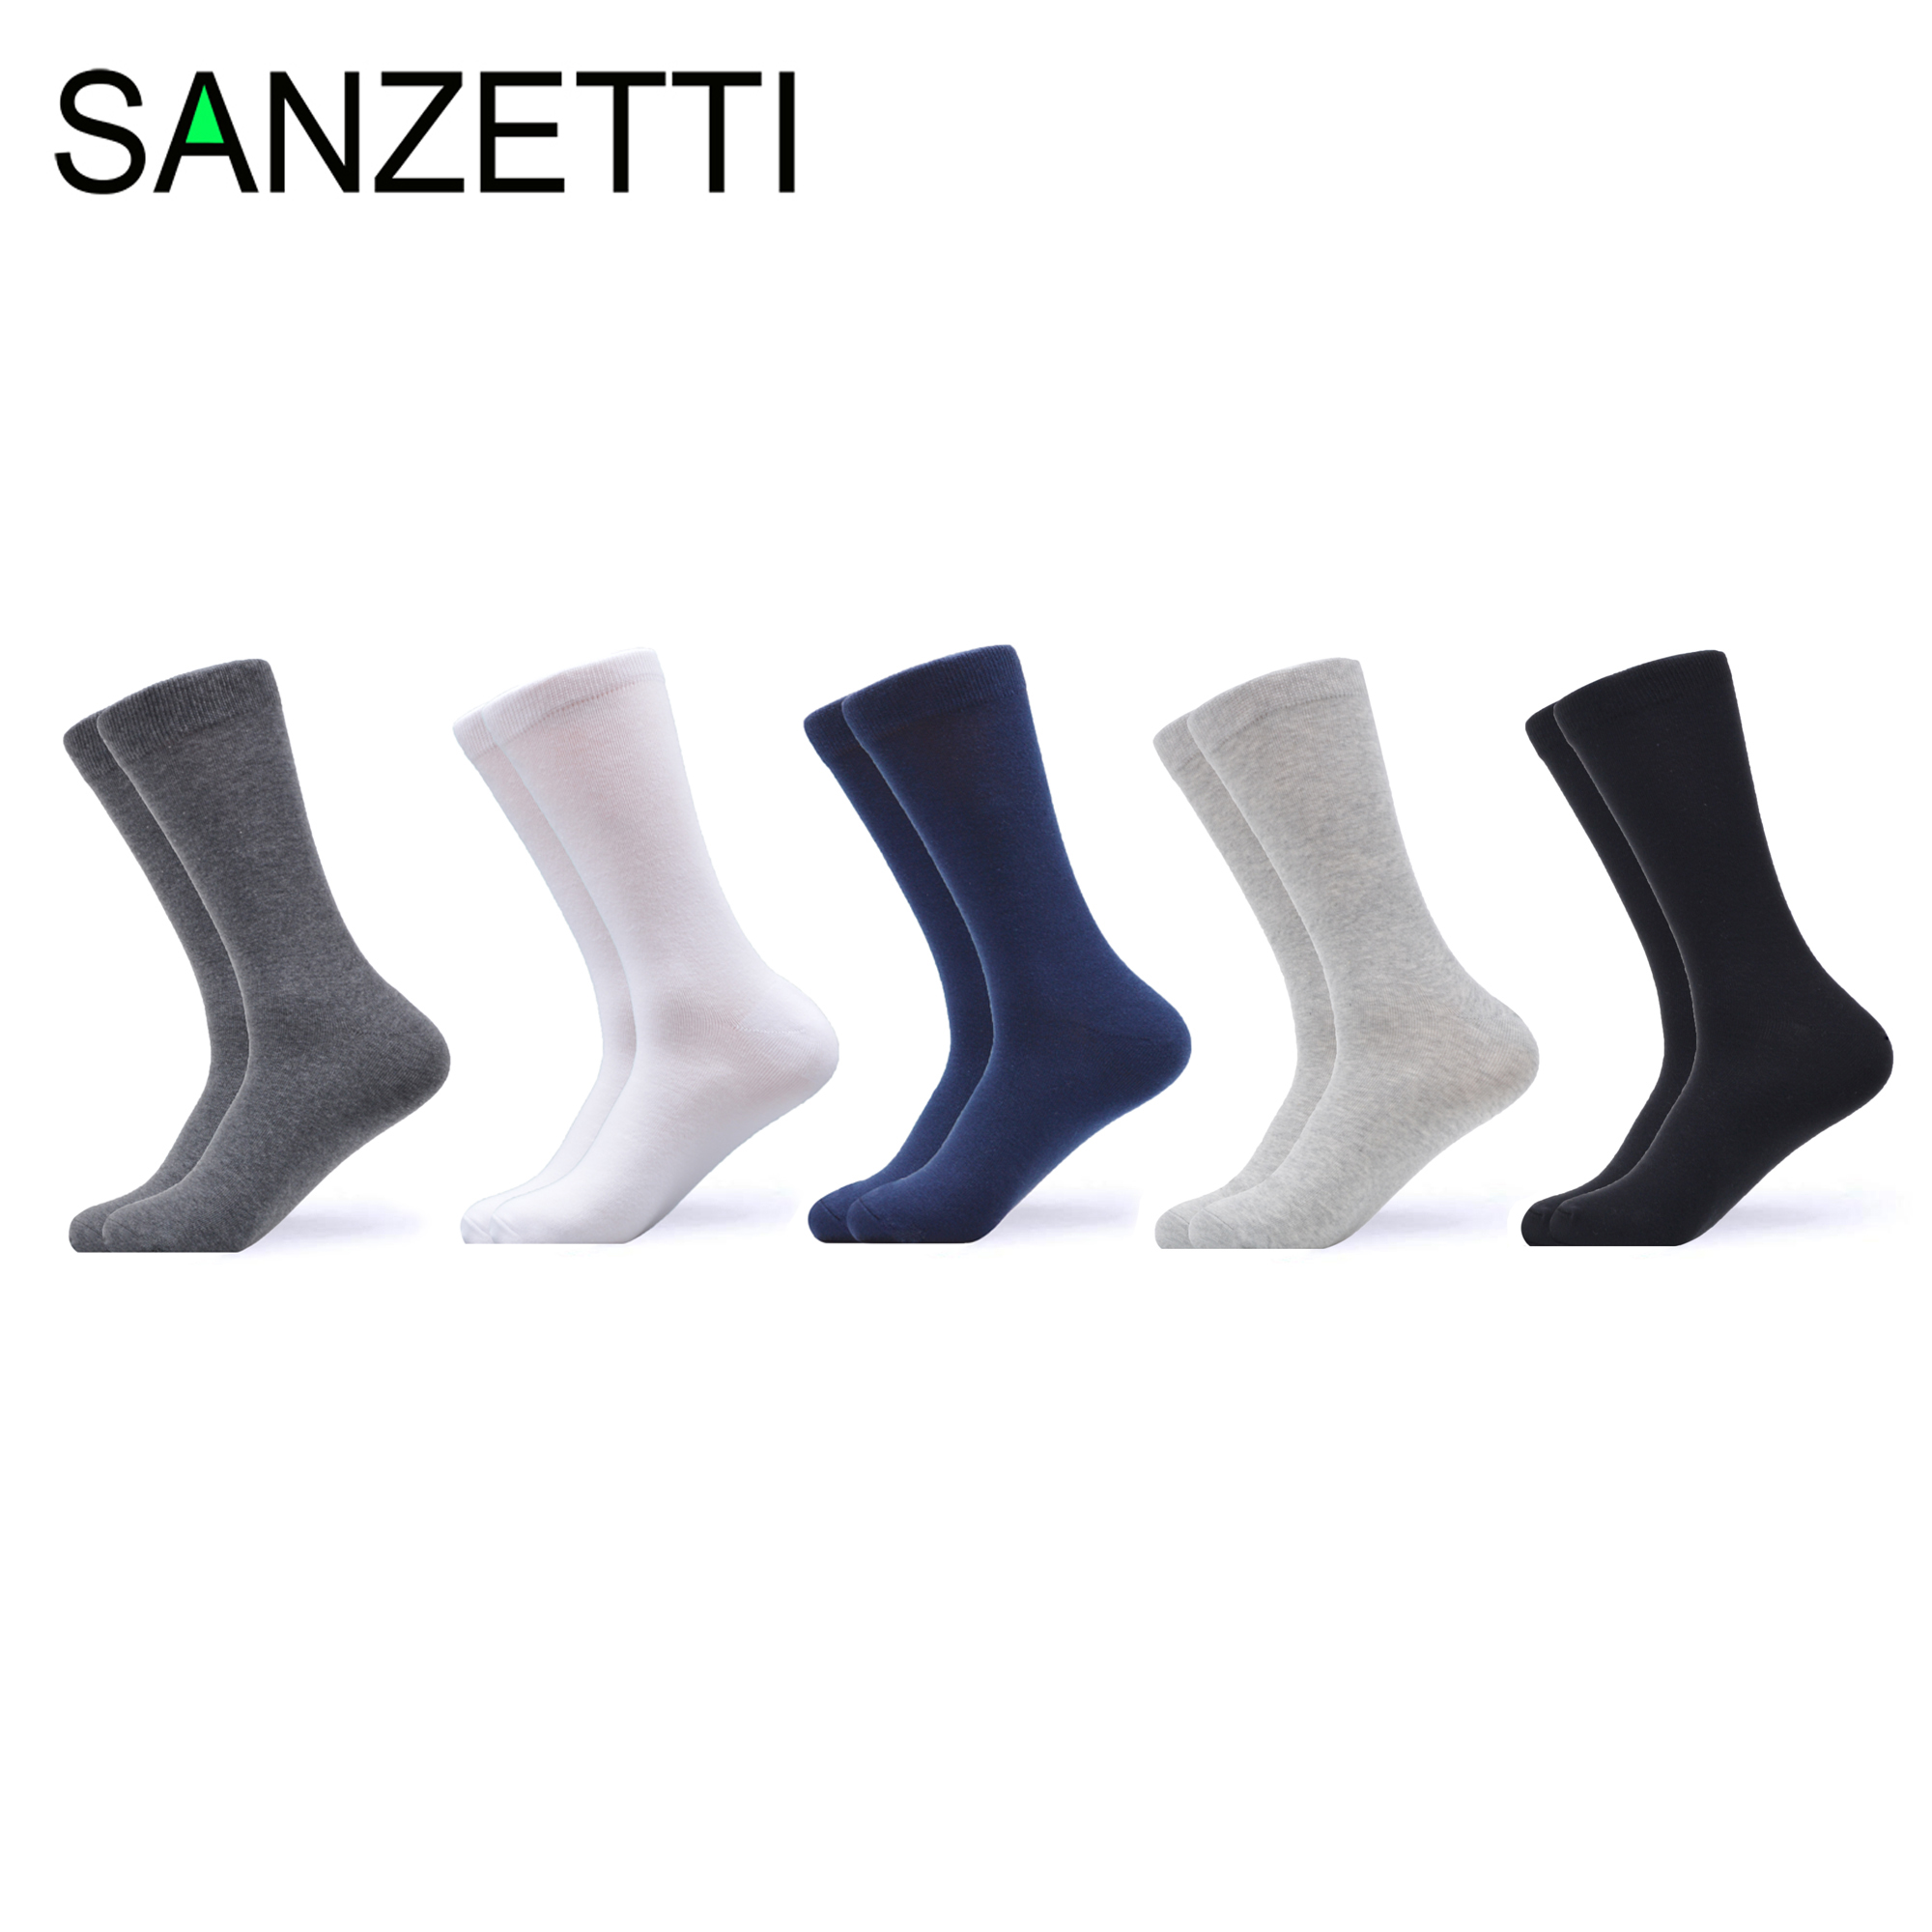 SANZETTI 2020 New Business Men Socks Calcetines Hombre Solid Color Classic Sock Male Ladies Breathable Winter Solid Cotton Socks